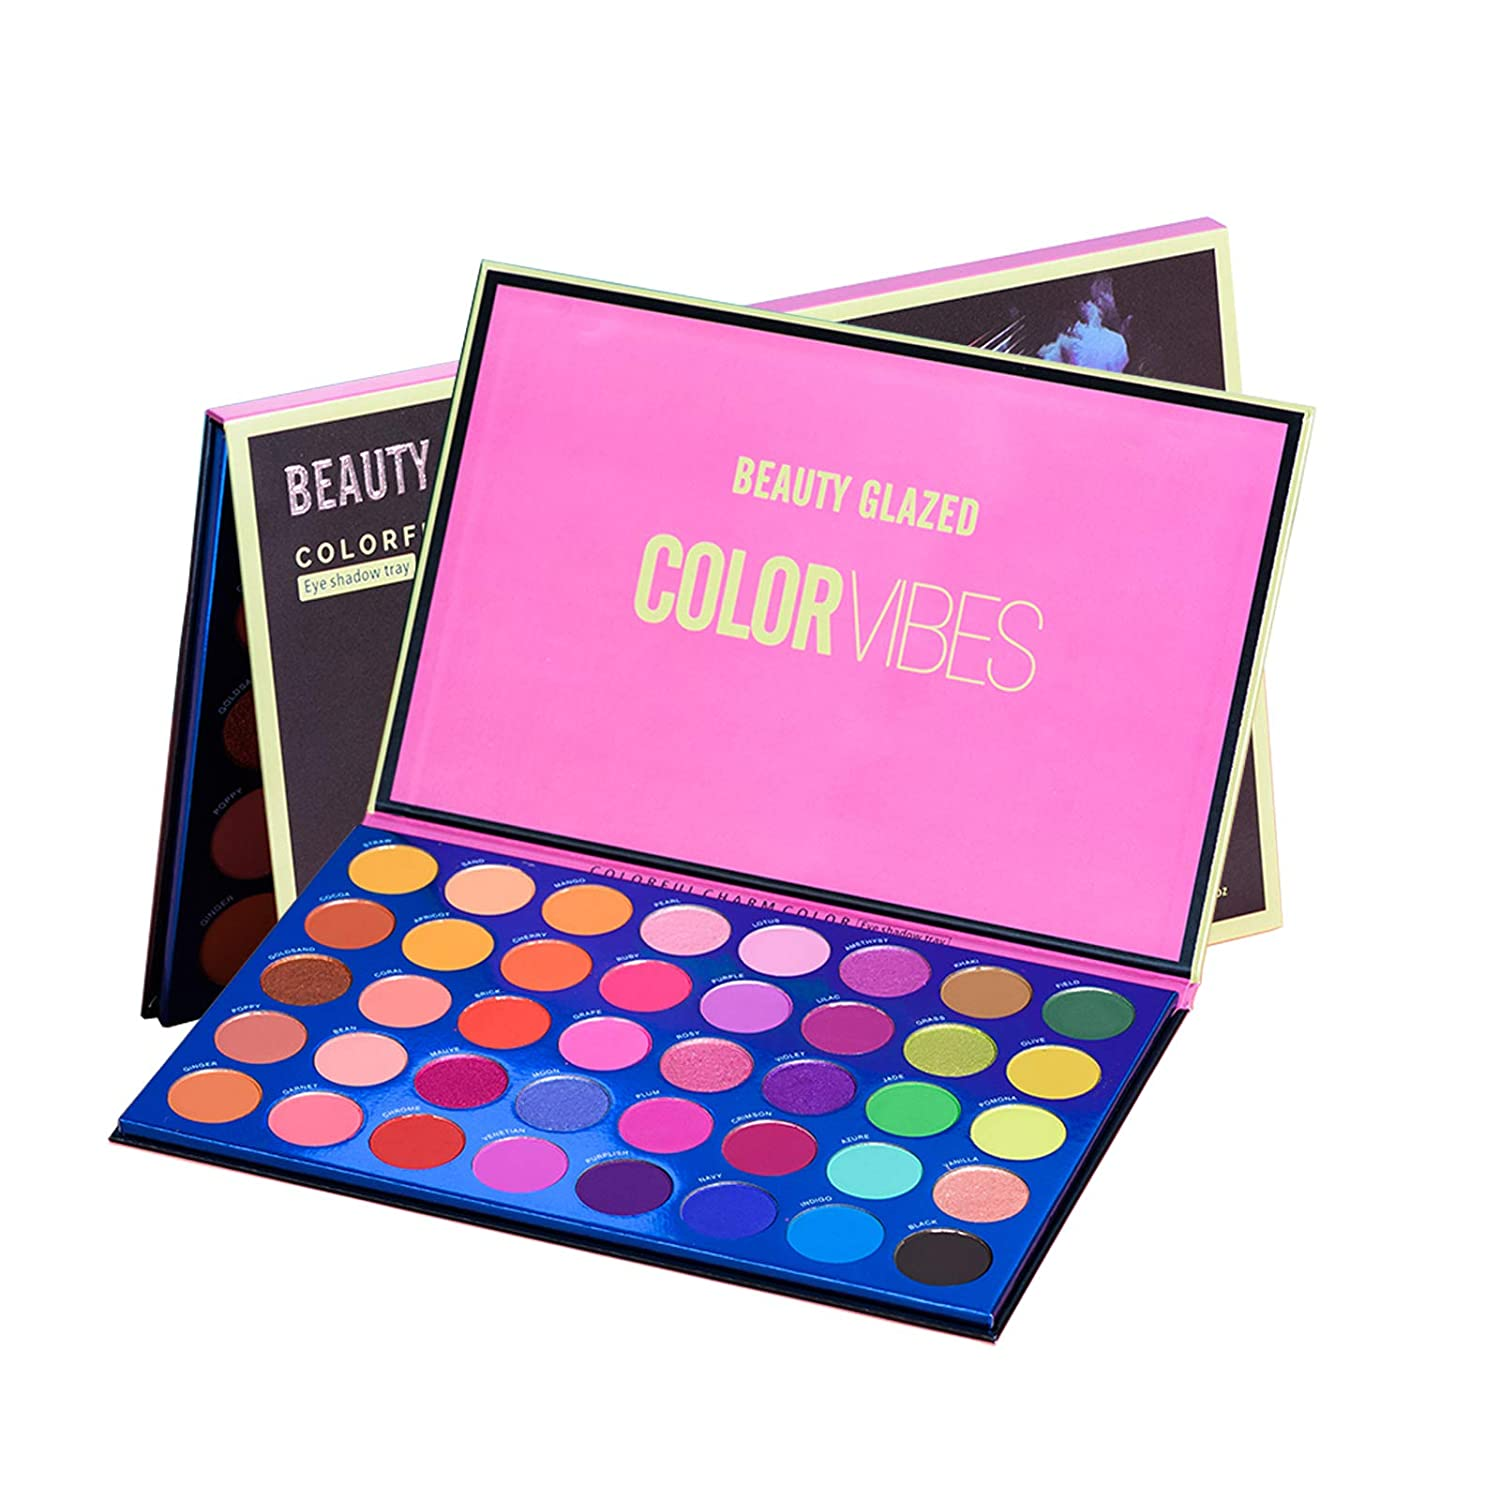 Eyeshadow Palette Matte Shimmer and Glitter 40 Color eyeshadow Smooth Texture Colorful Powder Makeup Palette Long Lasting Charm Neutarl Professional Eye Shadow Tray